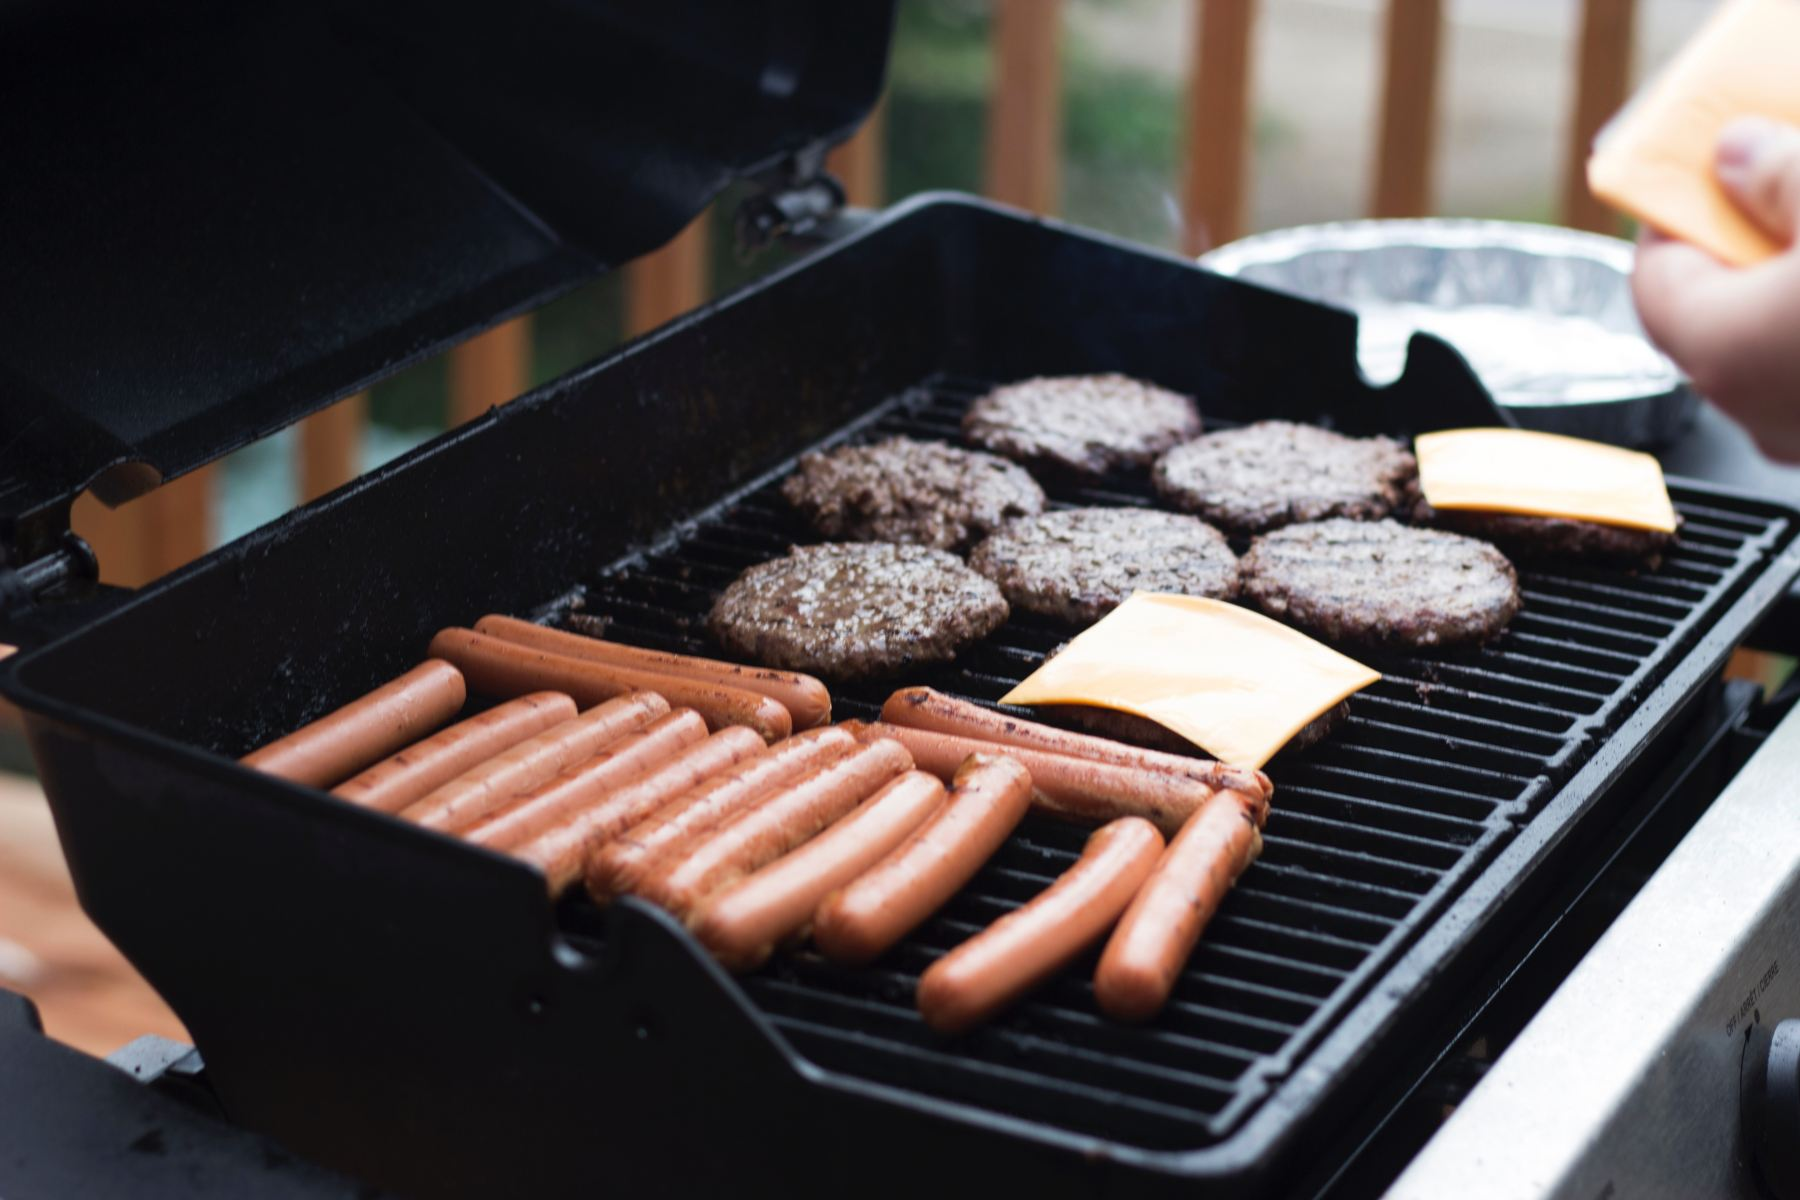 Is your July 4 cookout a cancer risk?